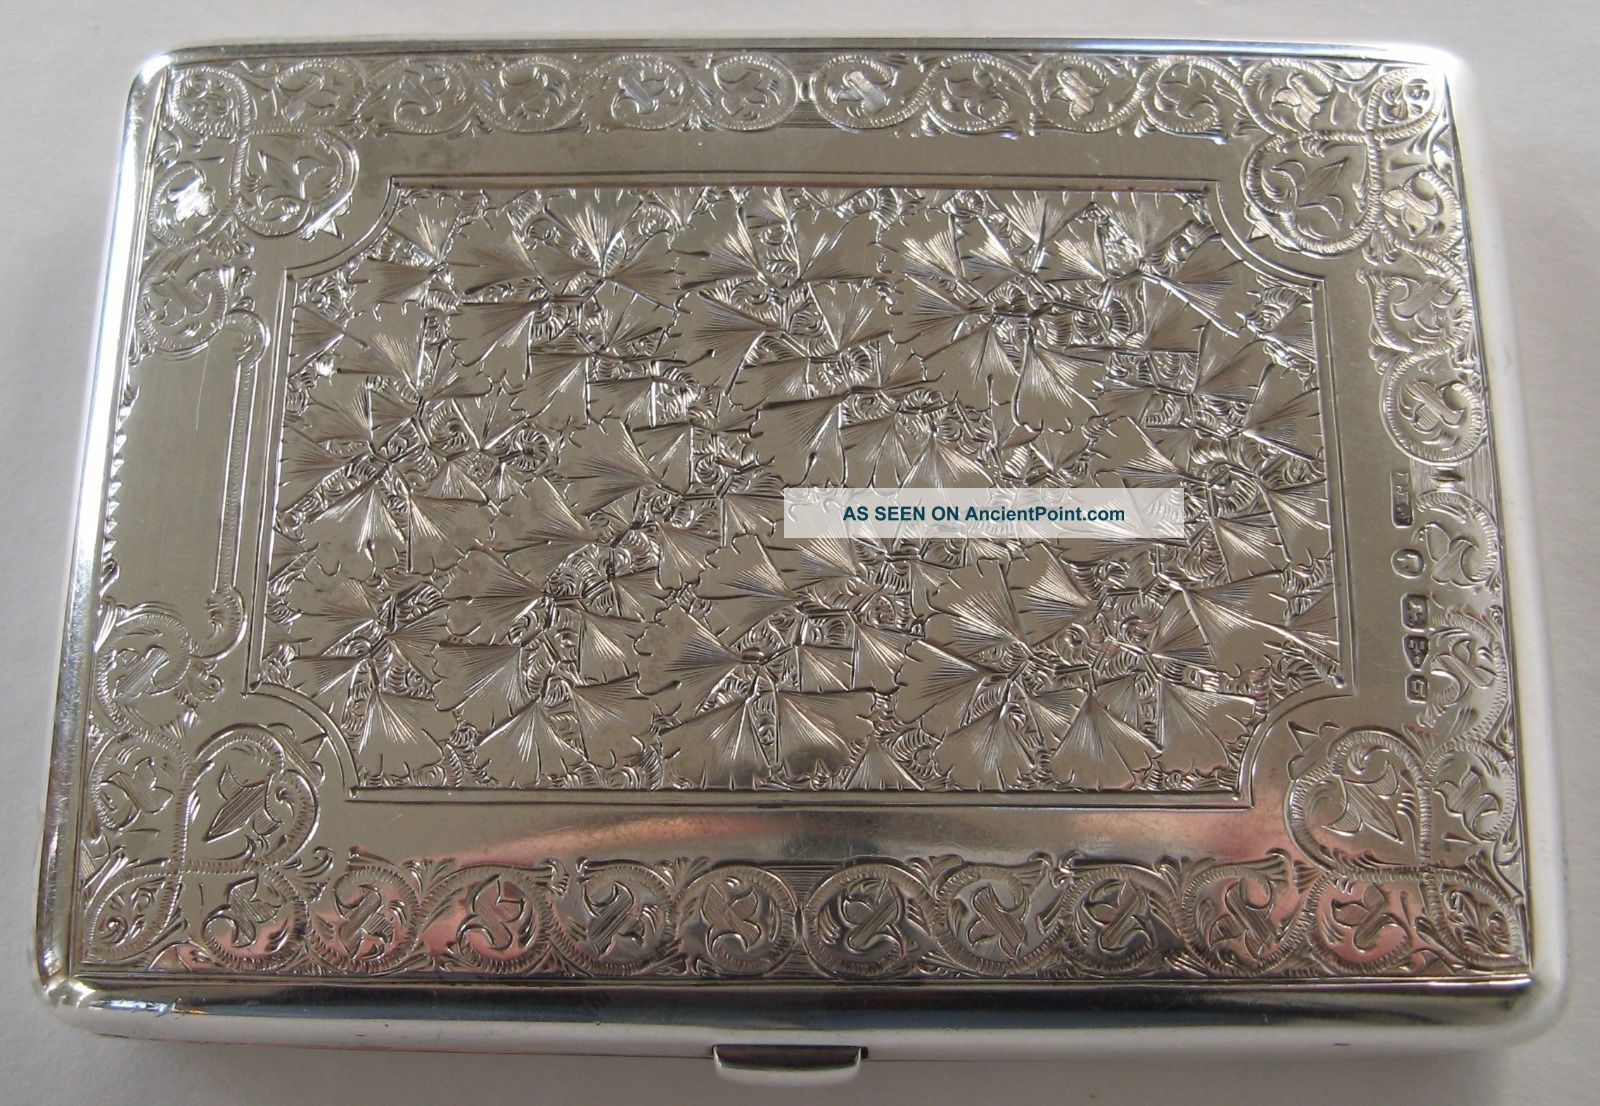 Stunning Antique Sterling Silver Victorian Card Case Purse Chester 1879 Card Cases photo